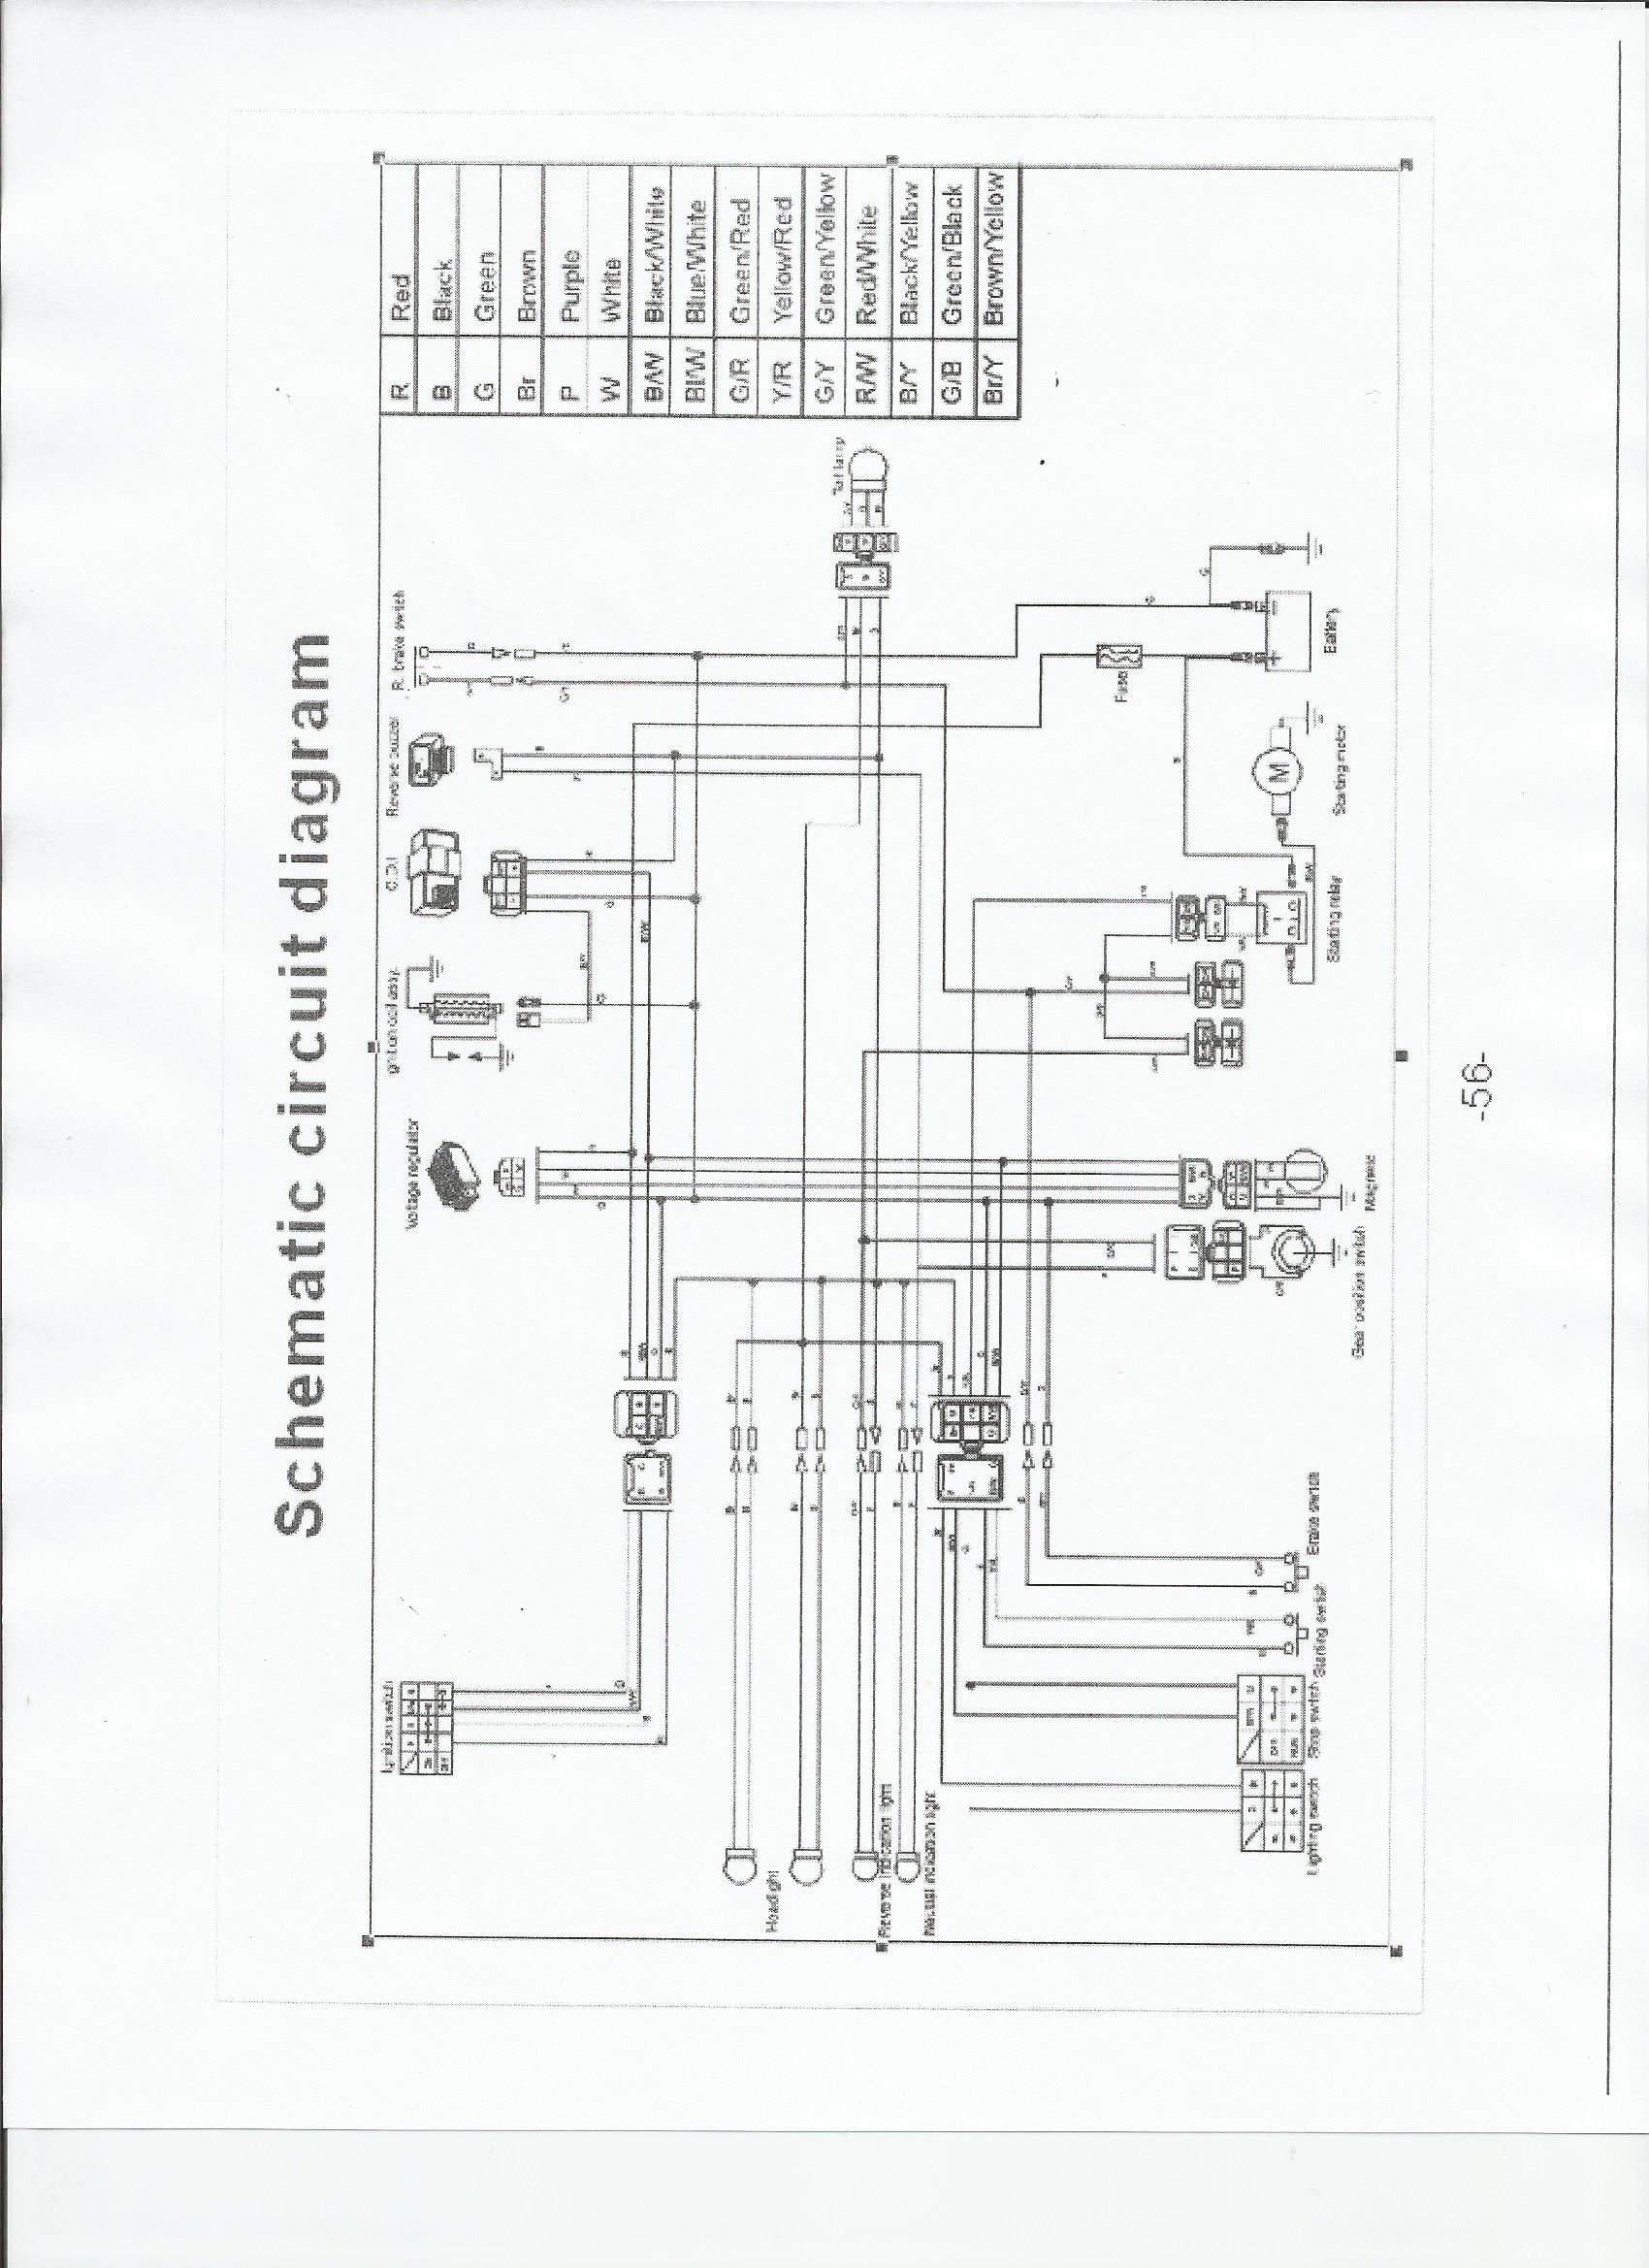 yamaha wiring diagram 50cc atv with 215268823 Taotao Mini And Youth Atv Wiring Schematic on 215268823 TaoTao Mini And Youth ATV Wiring Schematic as well Wiring Diagram For Gy6 150cc Scooter likewise Repair And Service Manuals together with 1999 Chevy Silverado Power Steering System moreover Coolster 150cc Atv Wiring Diagram.